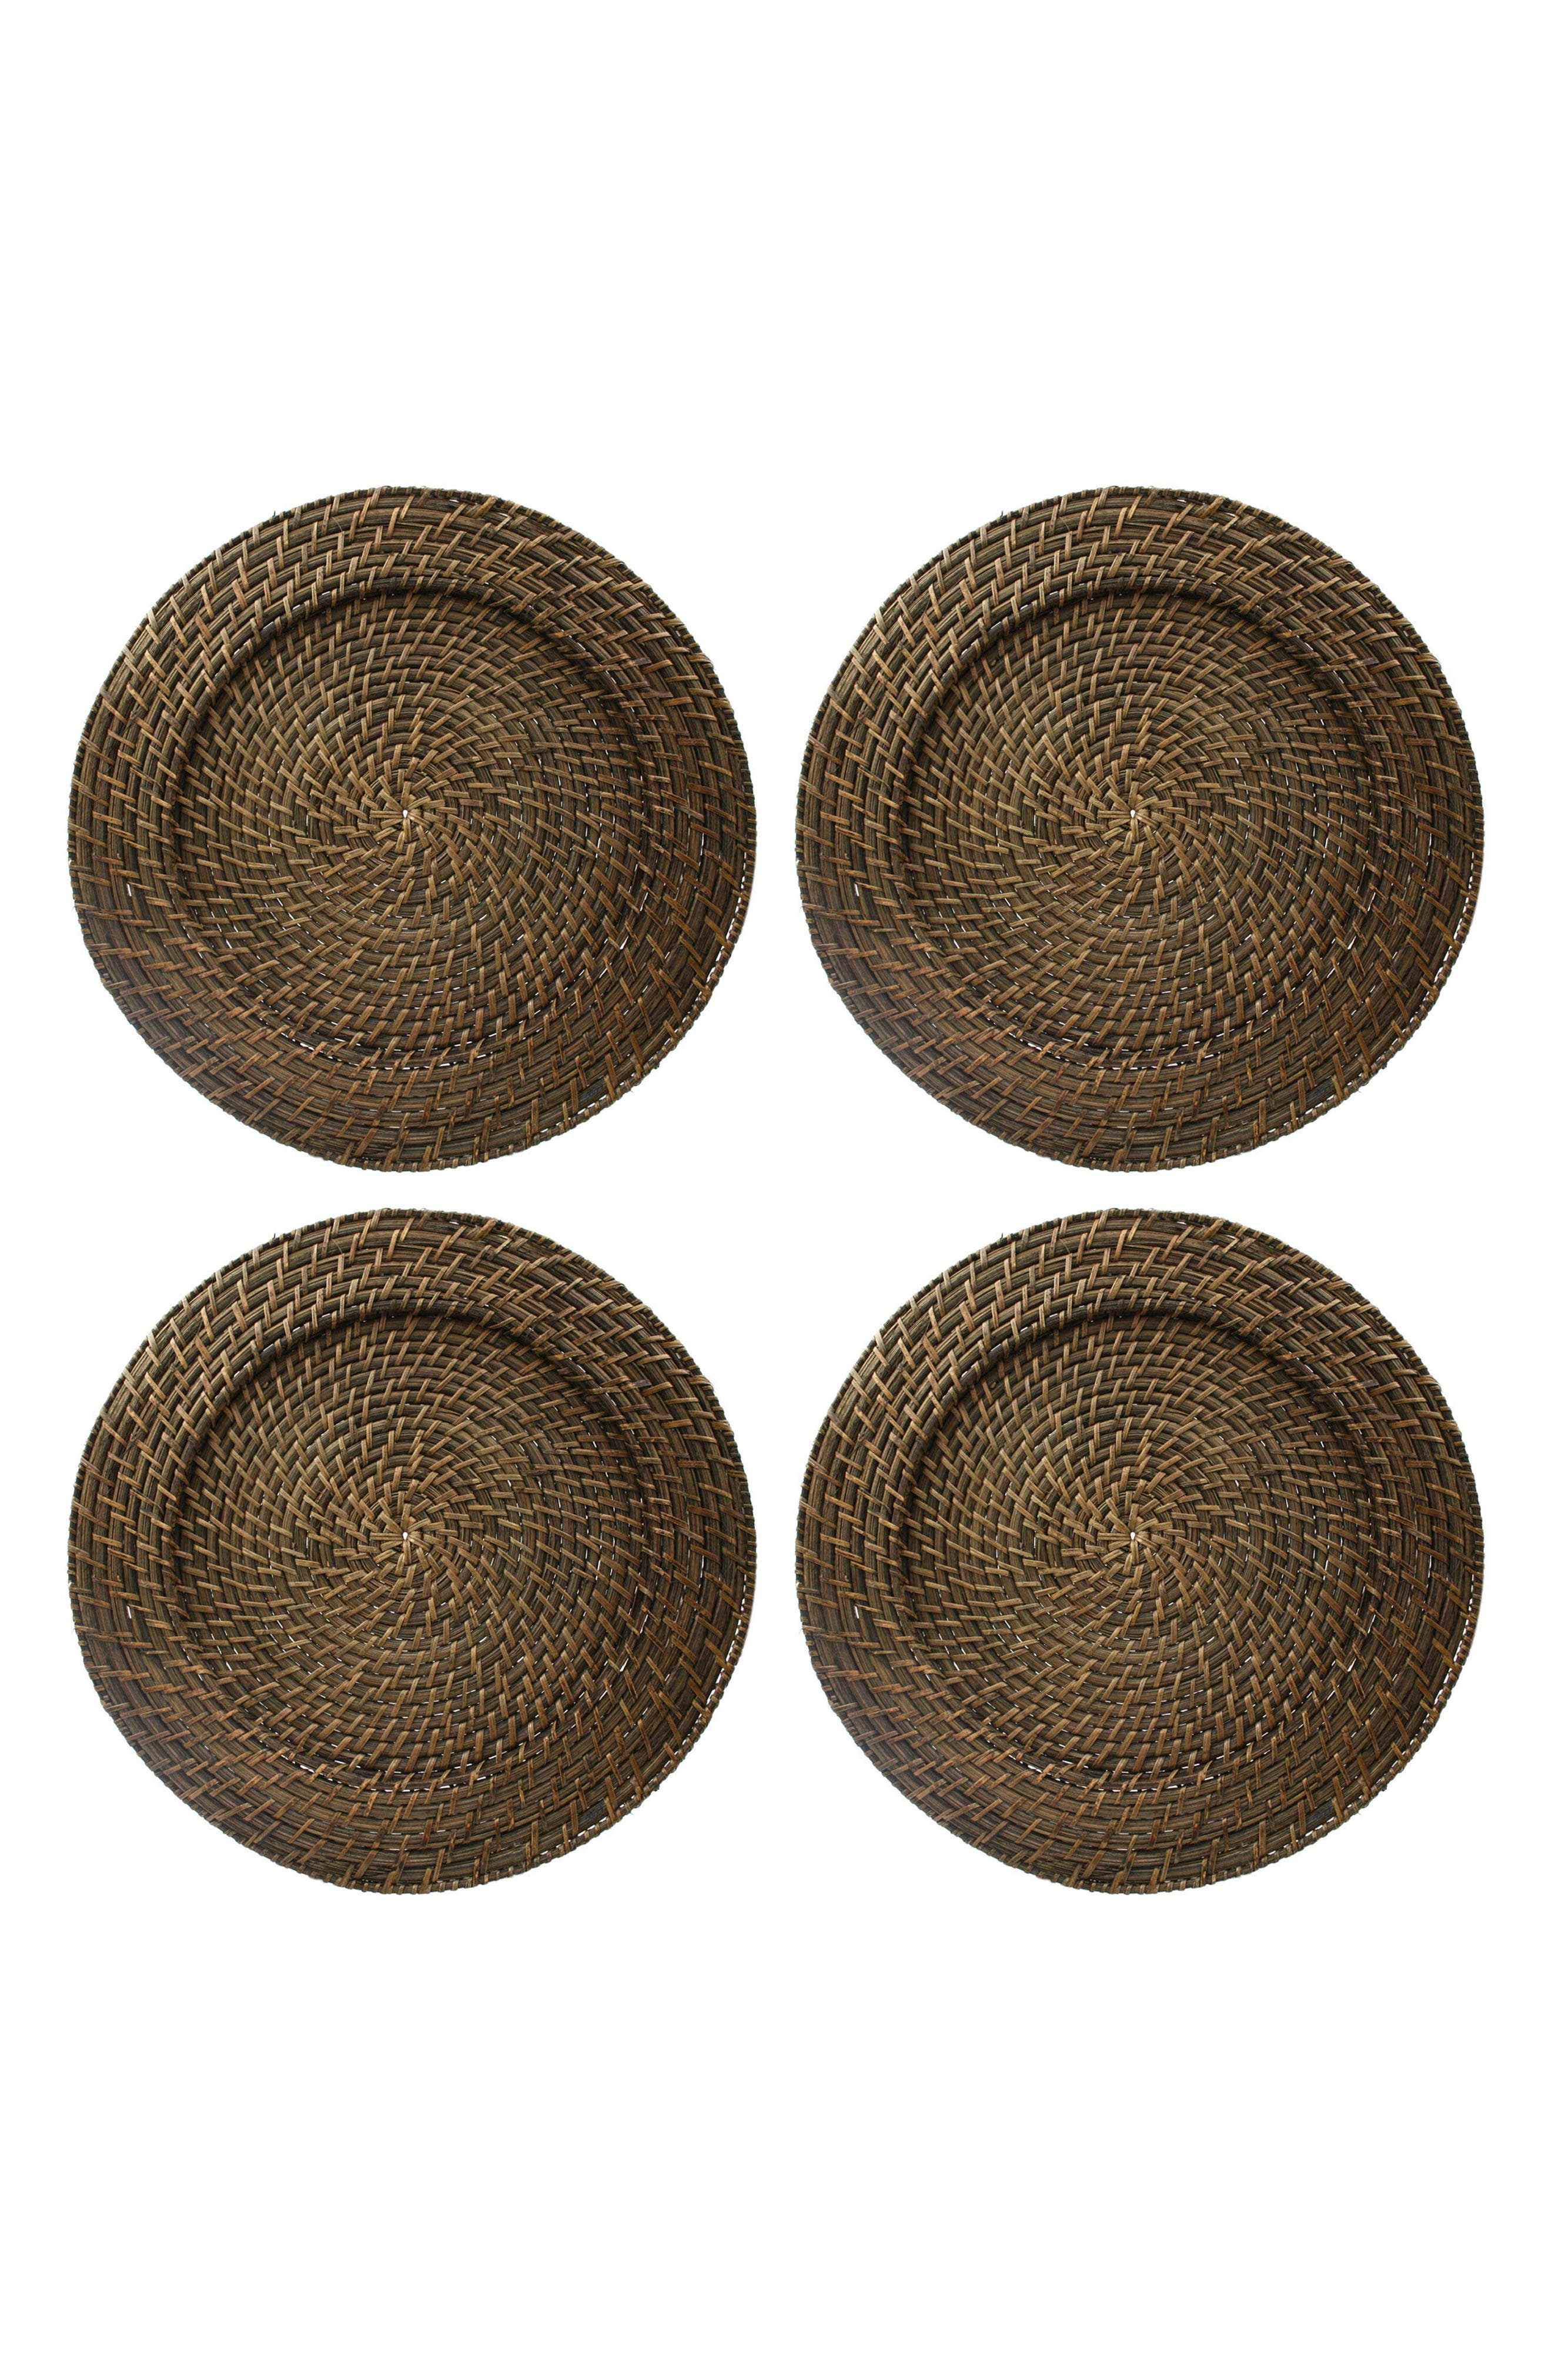 American Atelier Set of 4 Rattan Charger Plates